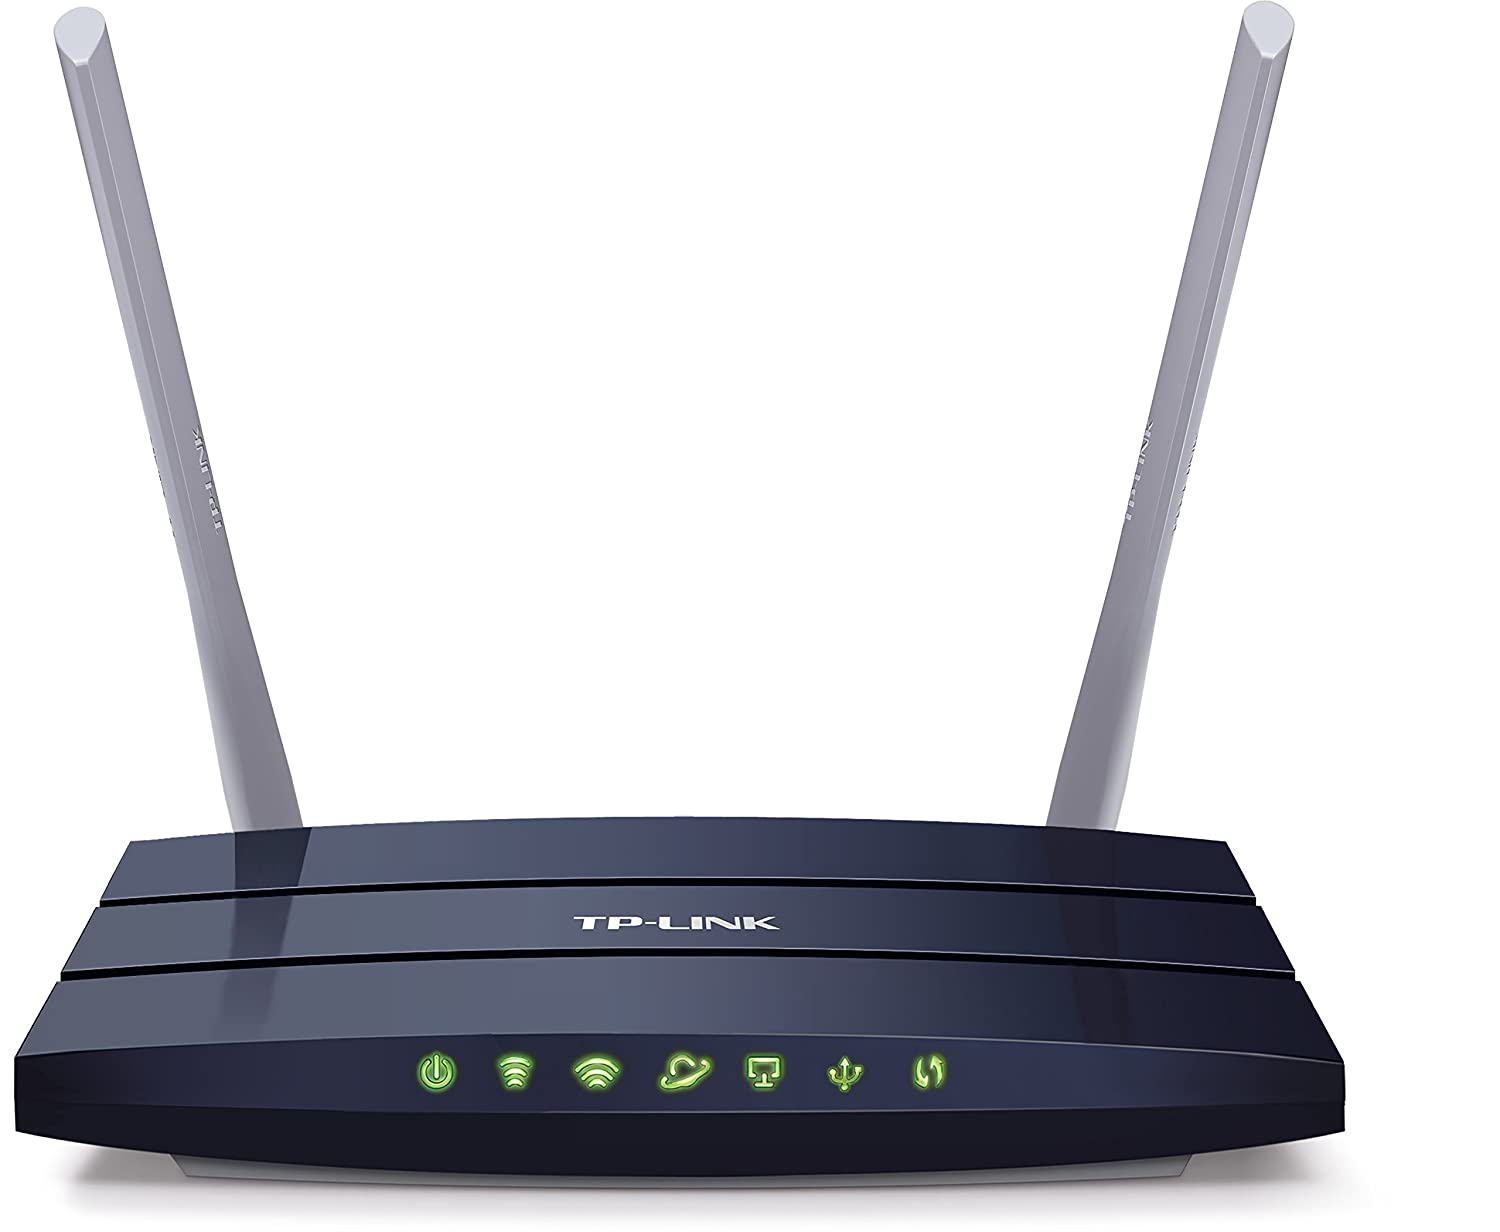 TP-Link AC1200 Wireless Wi-Fi Router